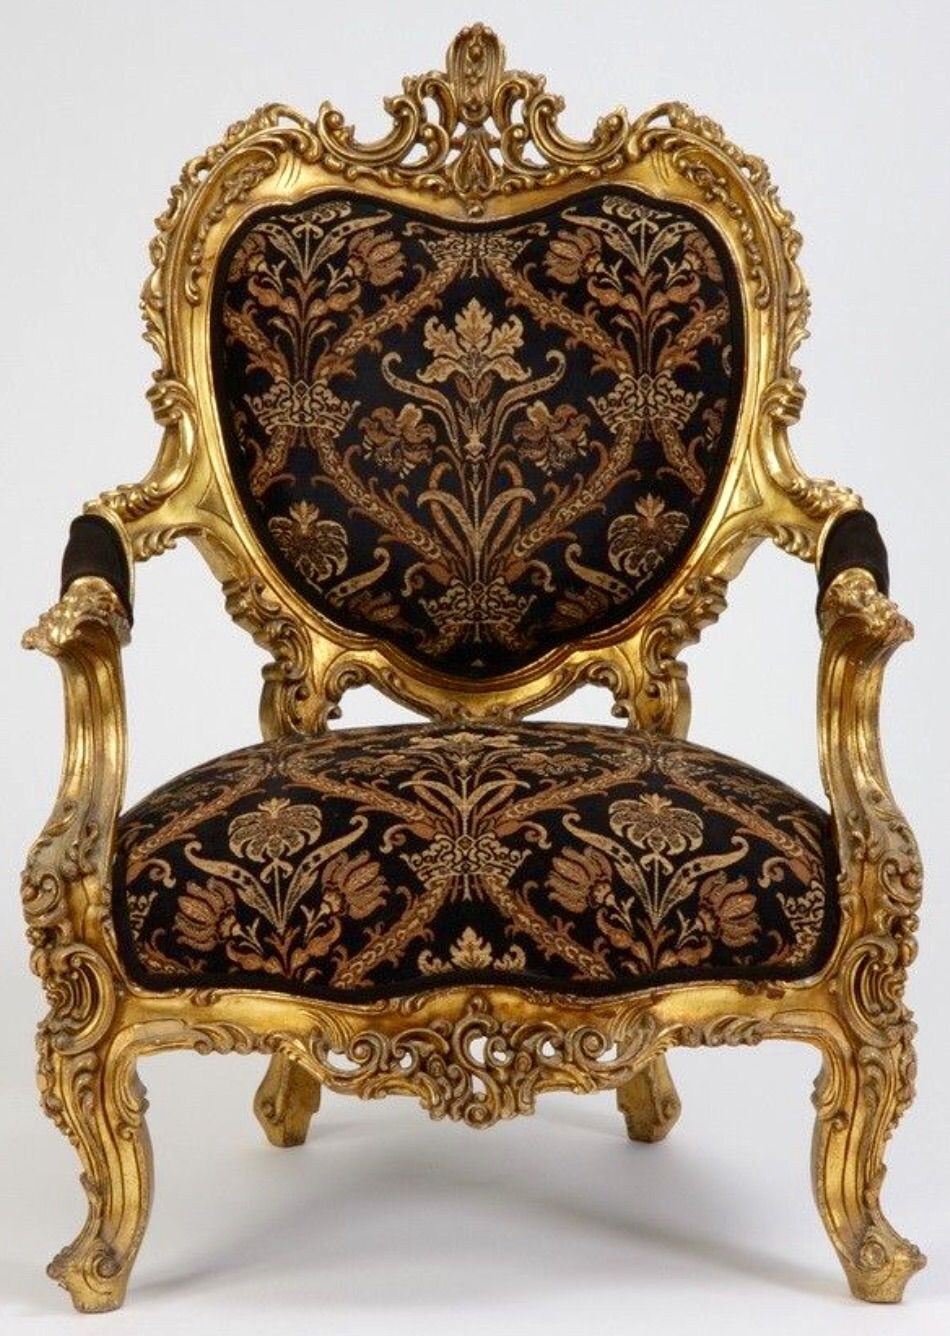 19th Century Itqlian Rococo Arm Chair Special Items III by Carol L